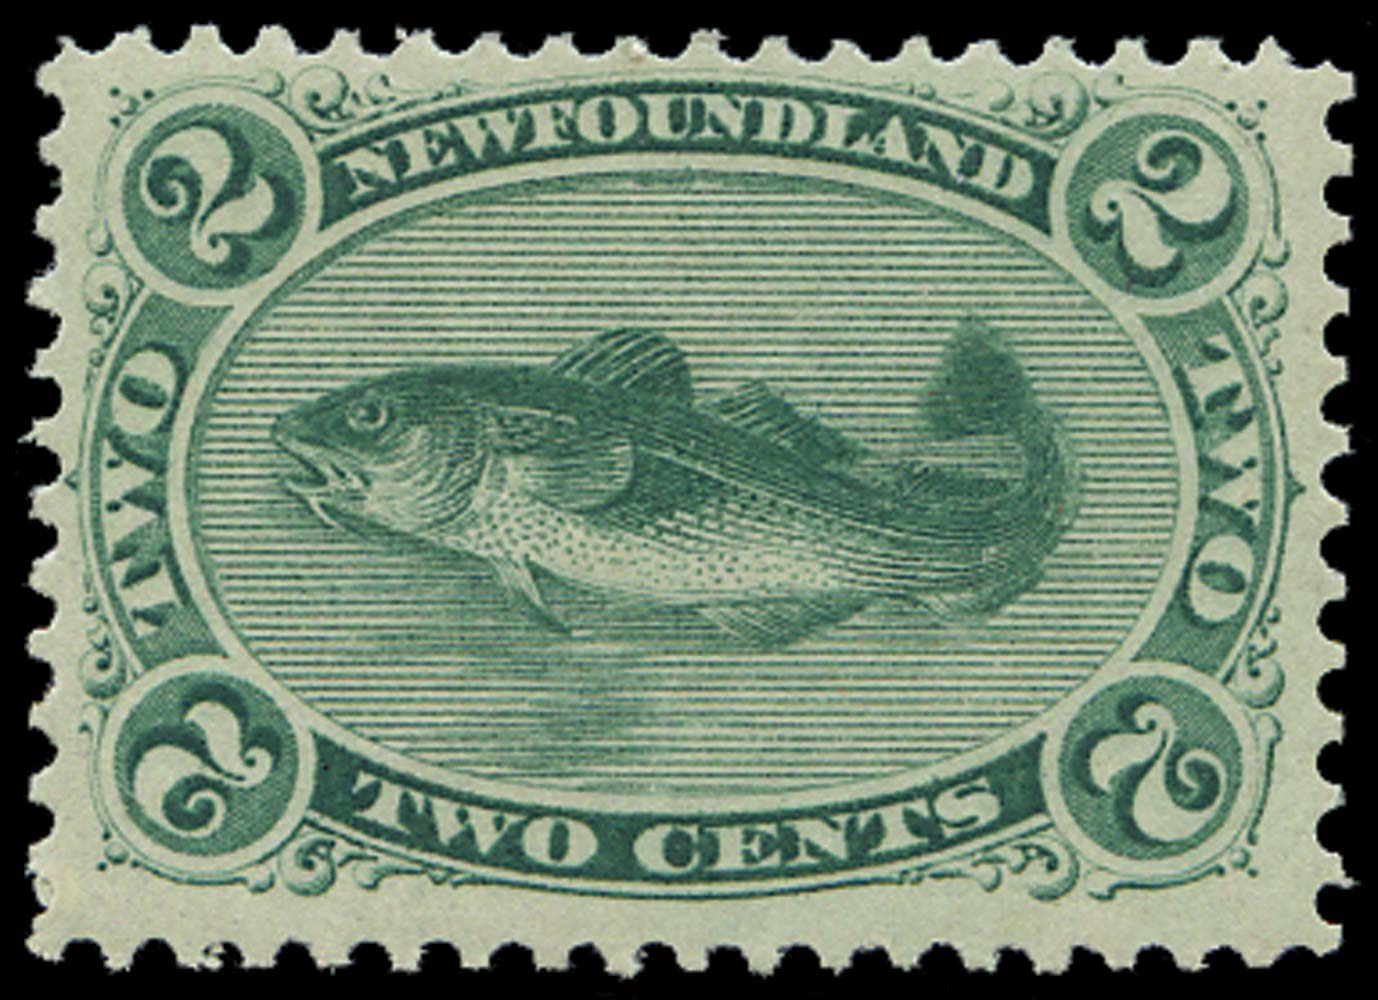 NEWFOUNDLAND 1865  SG25 Mint 2c yellowish green Atlantic Cod